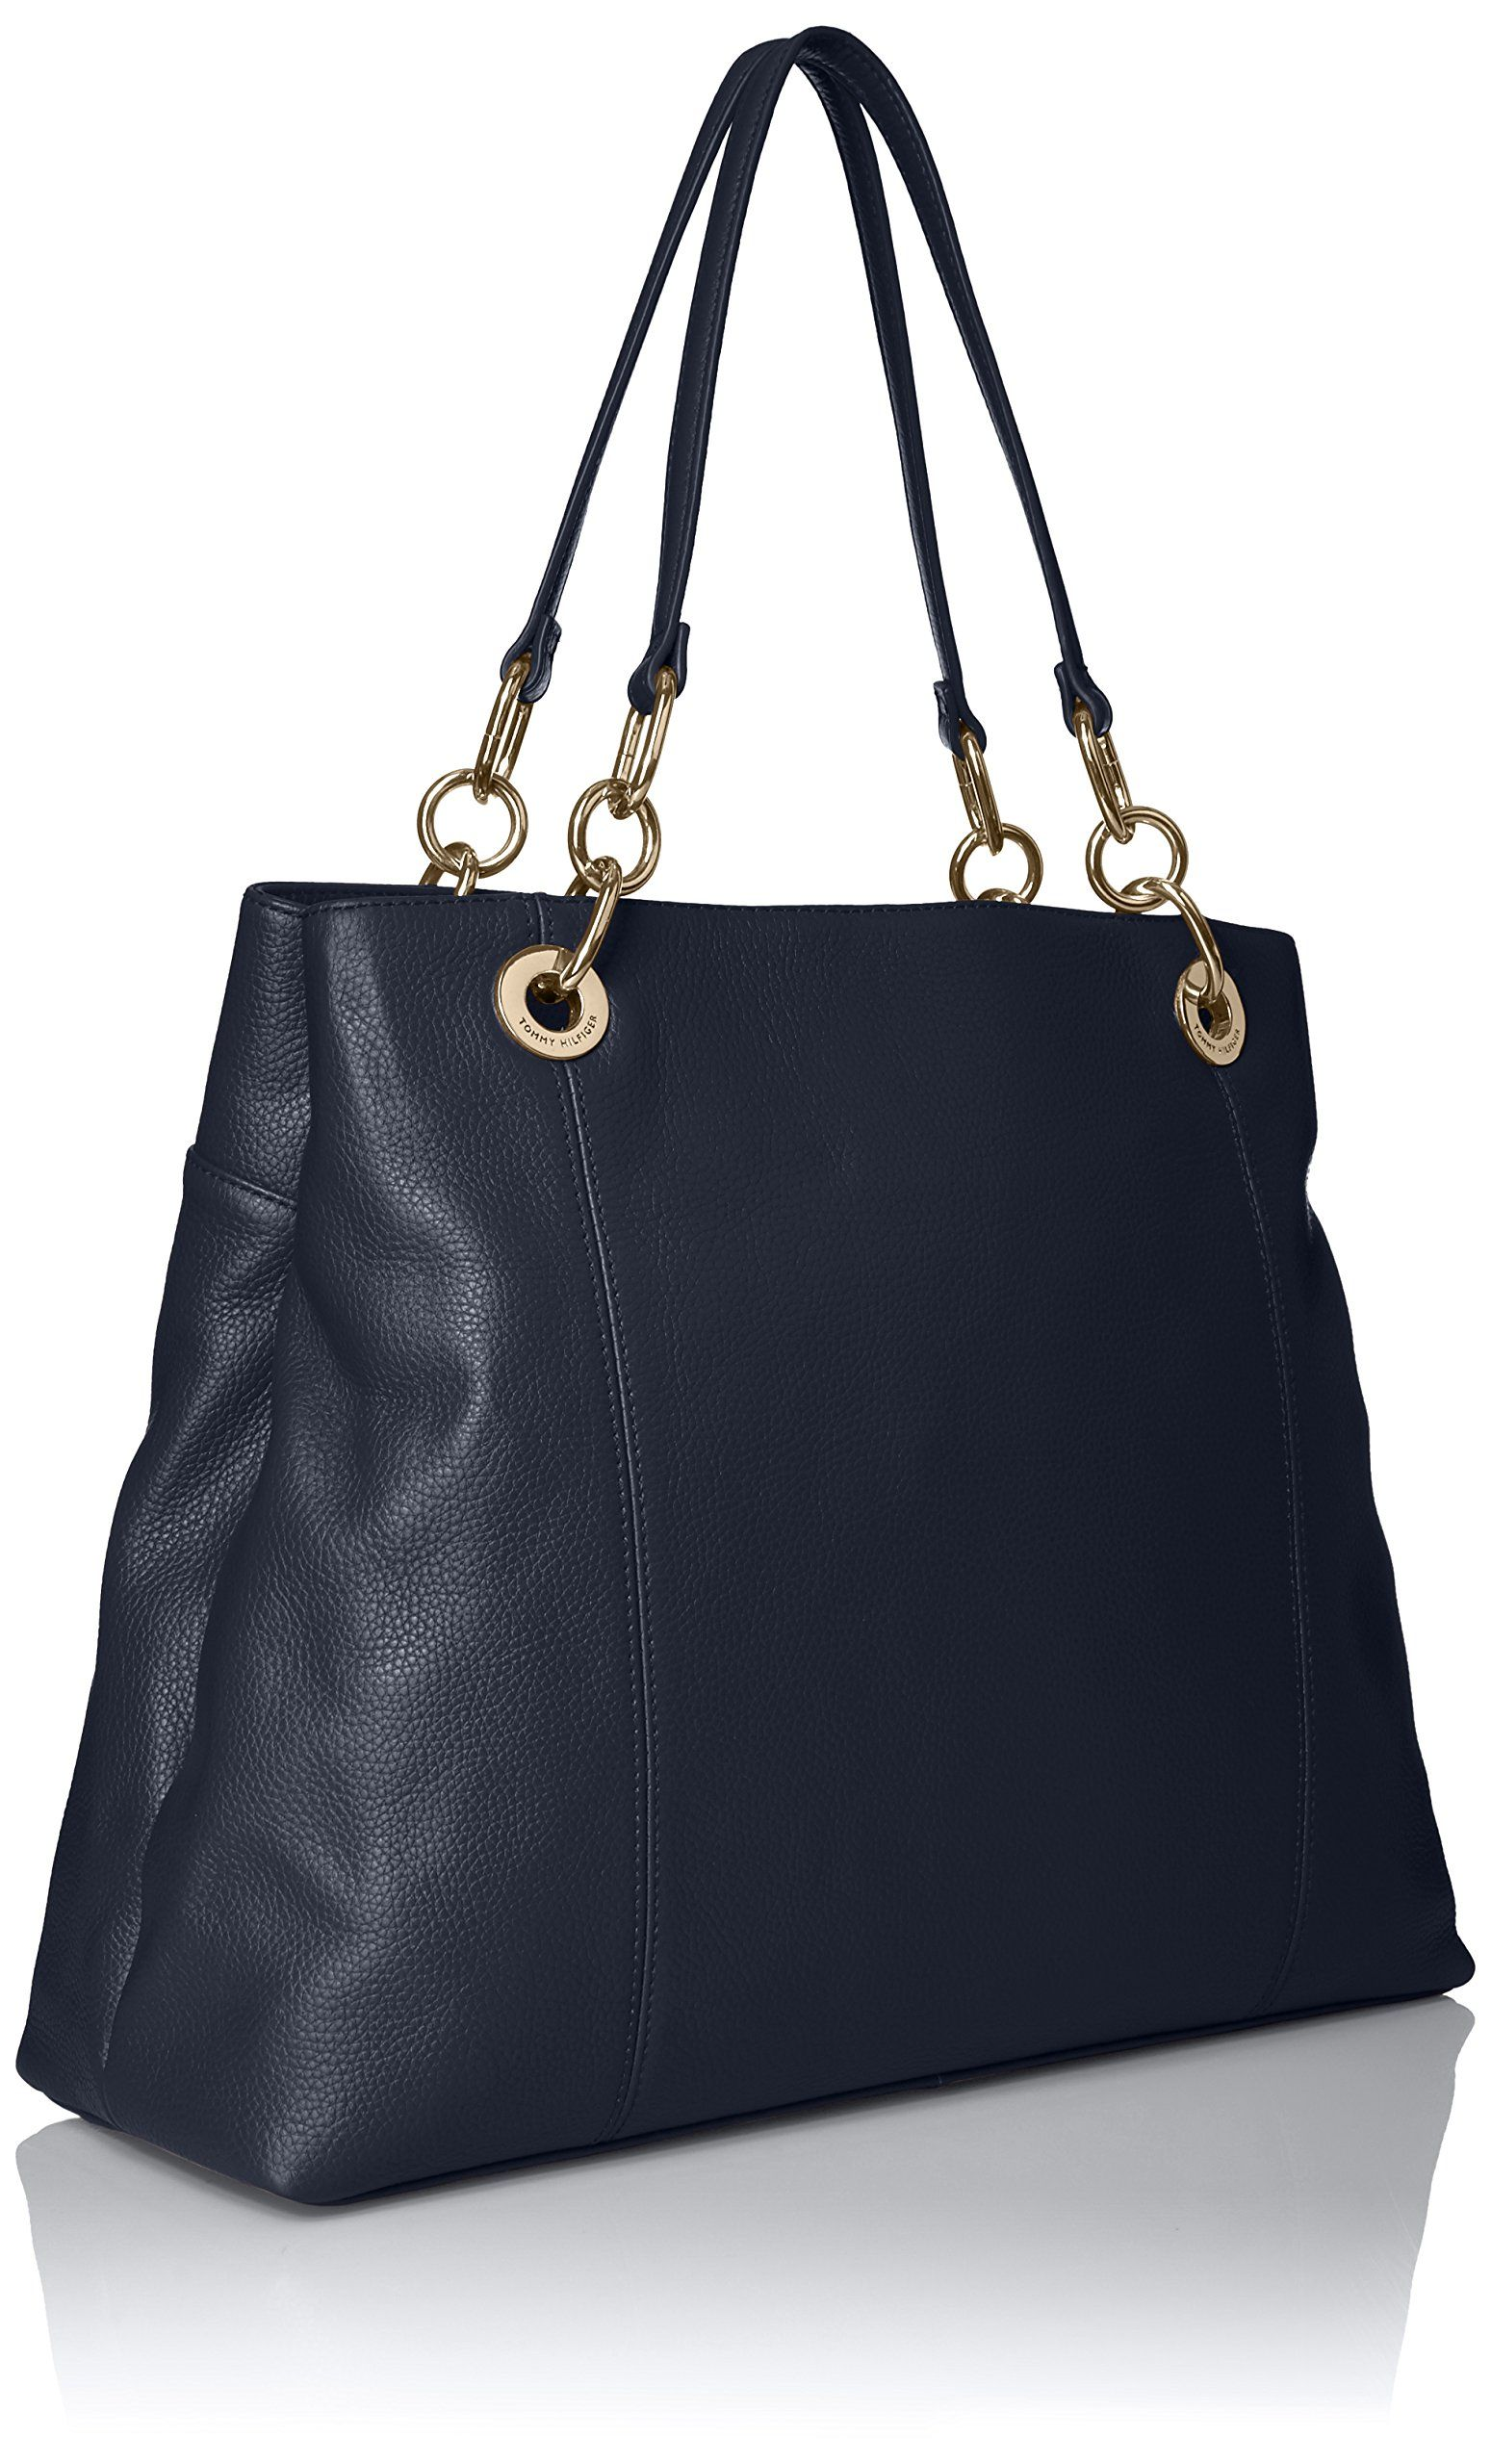 7a91bd3fdf81c Tommy Hilfiger Tote Bag for Women TH Signature Tommy Navy    Details can be  found